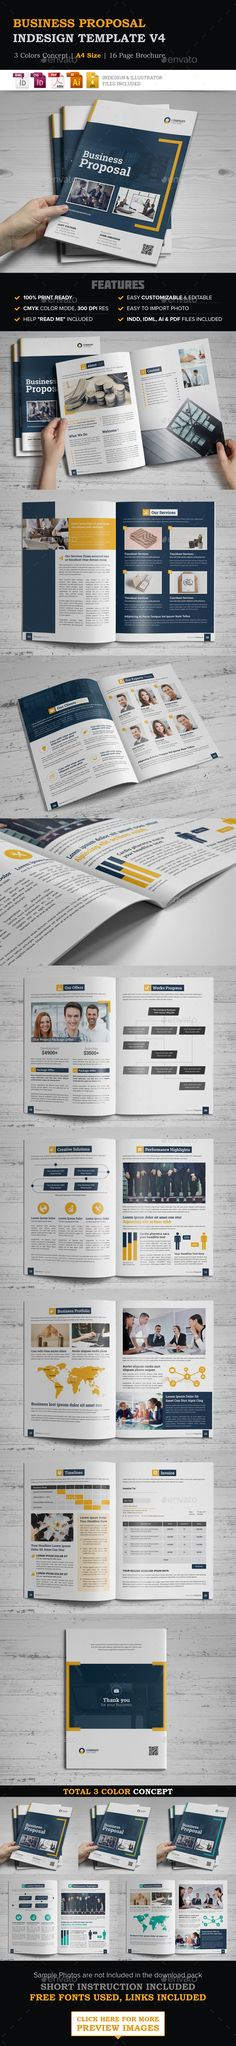 Newsletter design Newsletter design and Design - it project proposal template free download